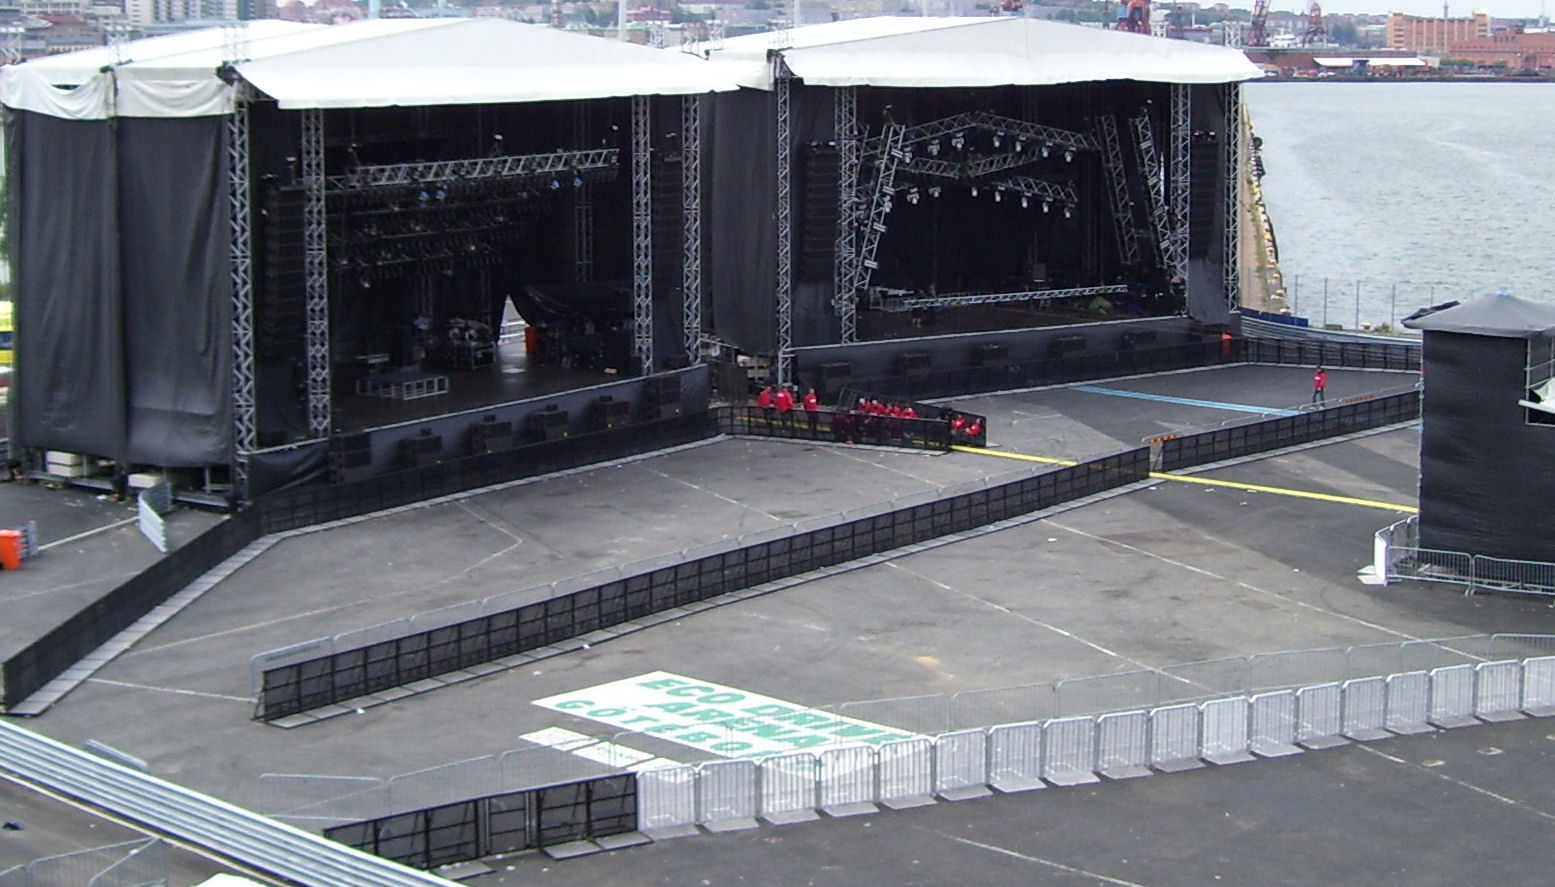 stages at metaltown in goteborg sweden